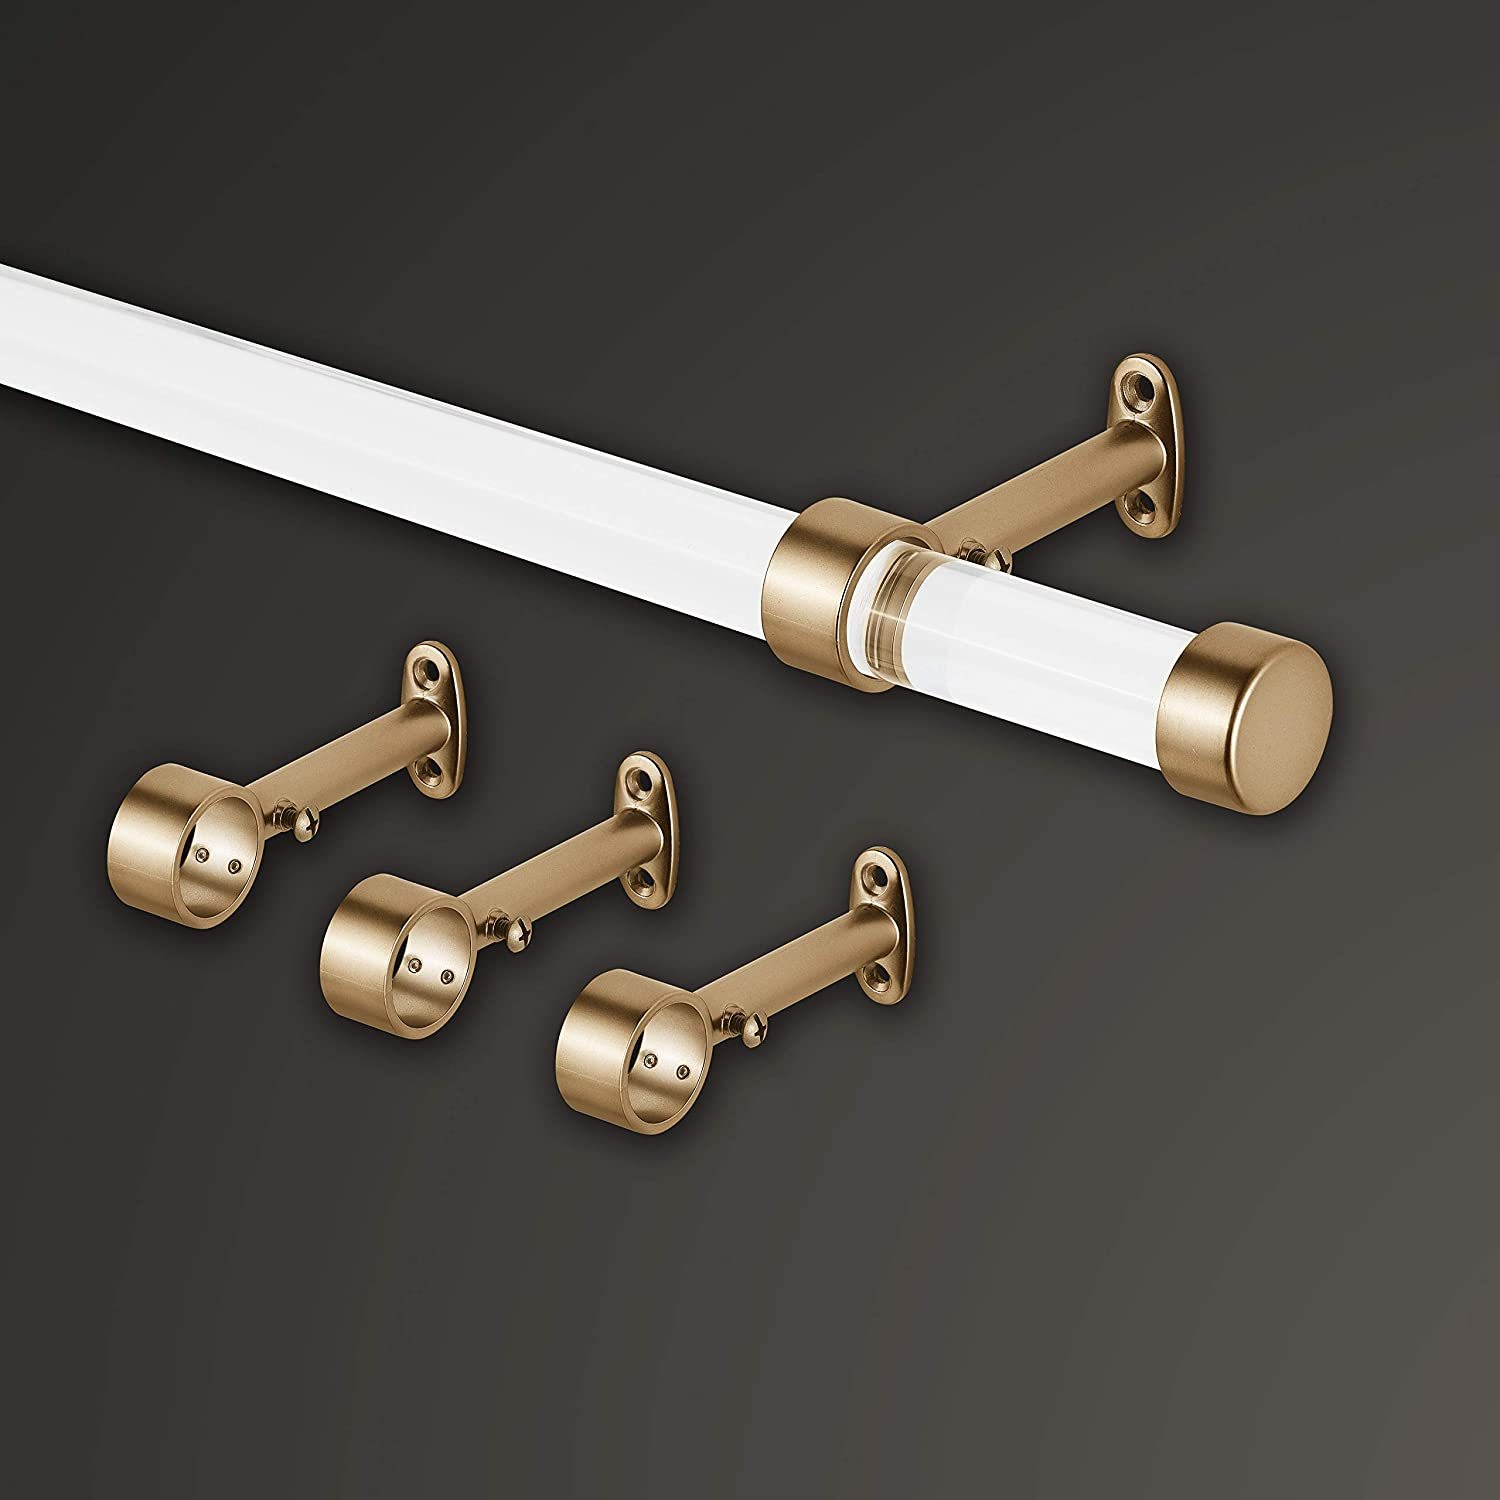 MODE Acrylic Collection Single Curtain Rod Set with Metal Endcaps Gold 6 ft Wide